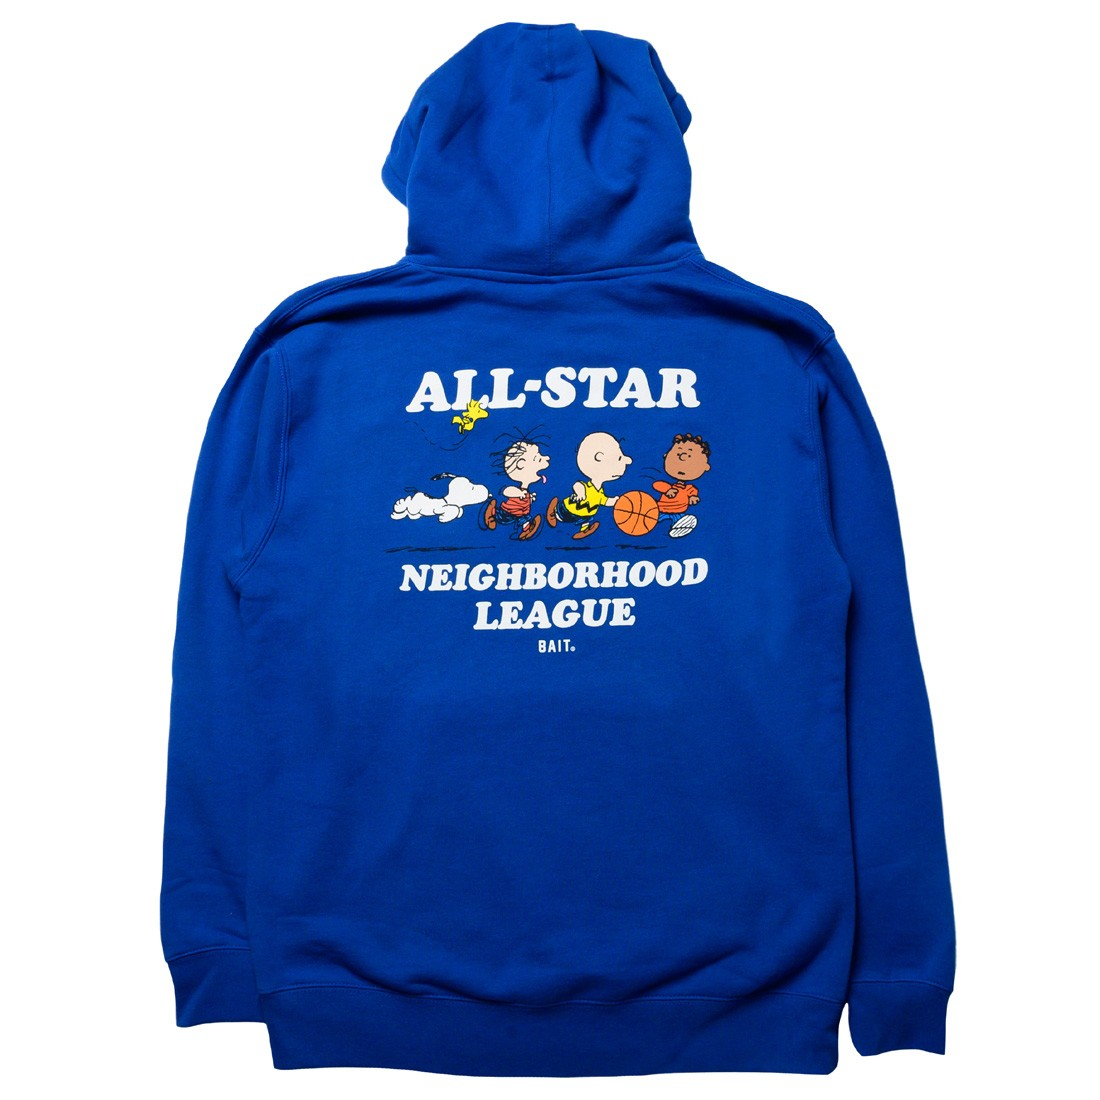 BAIT x Snoopy Men Neighborhood League Hoody (blue / royal)